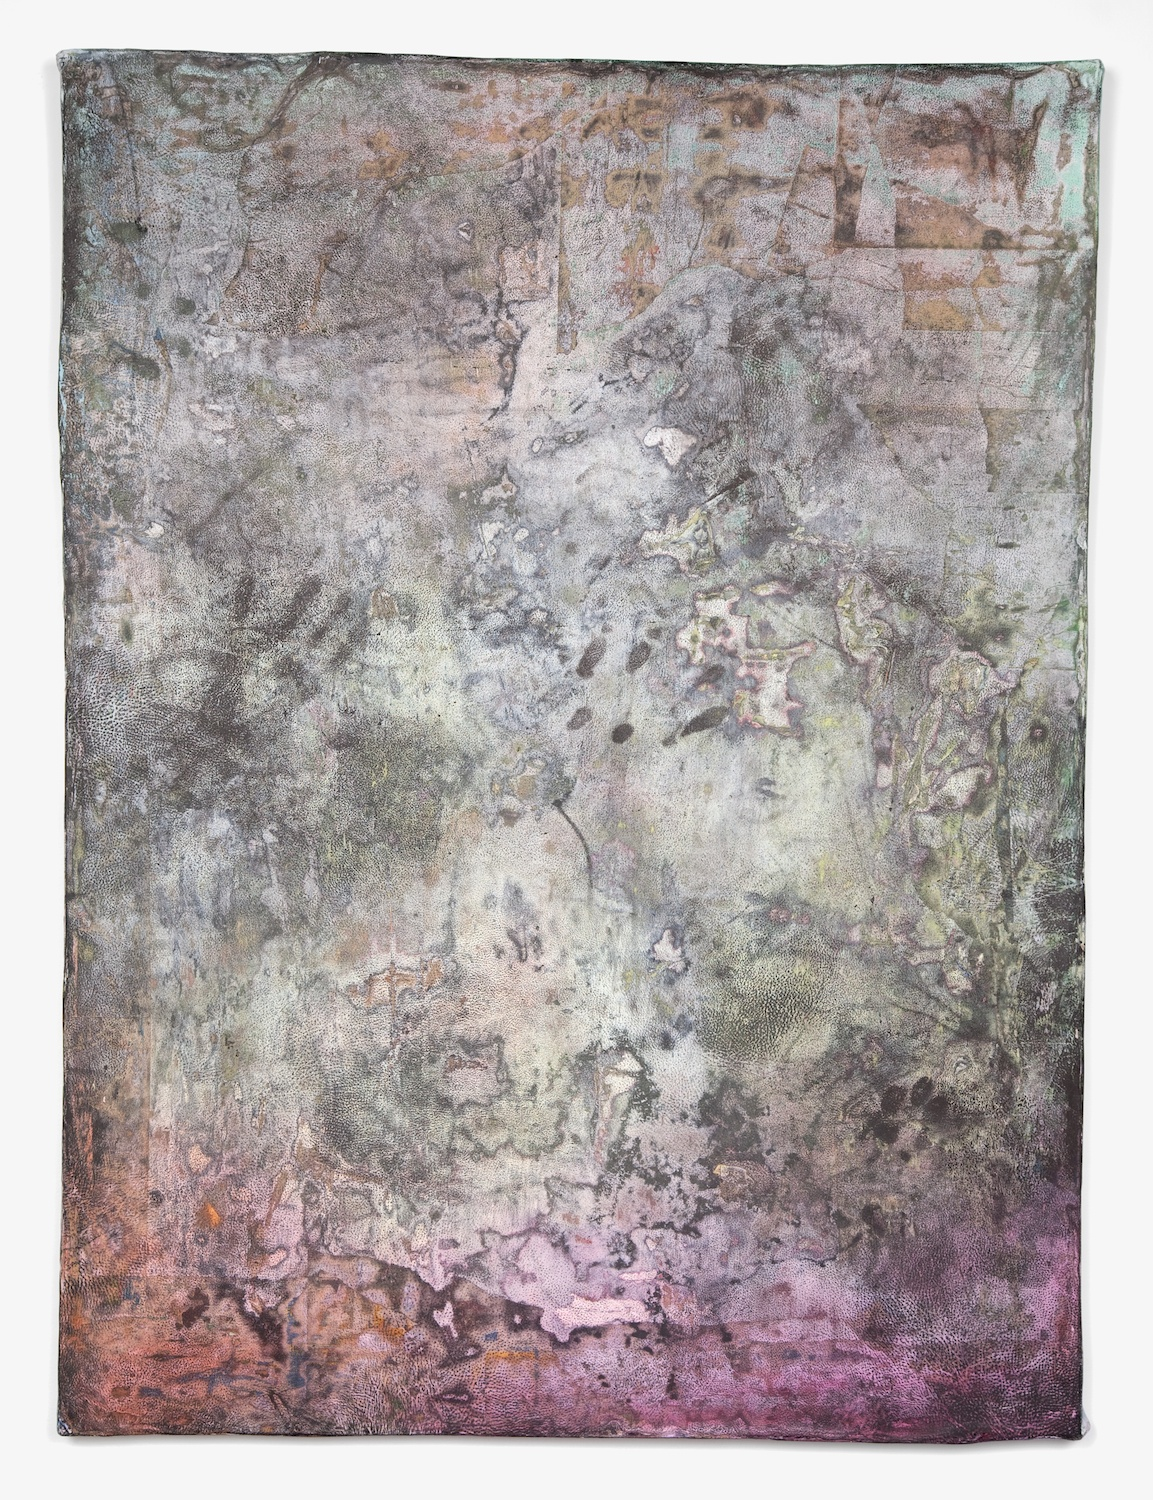 Jay Heikes  Ear of Dionysius  2011 Paper, aluminum, dry pigment, ink, and wood 49h x 36 ¾w in JH029